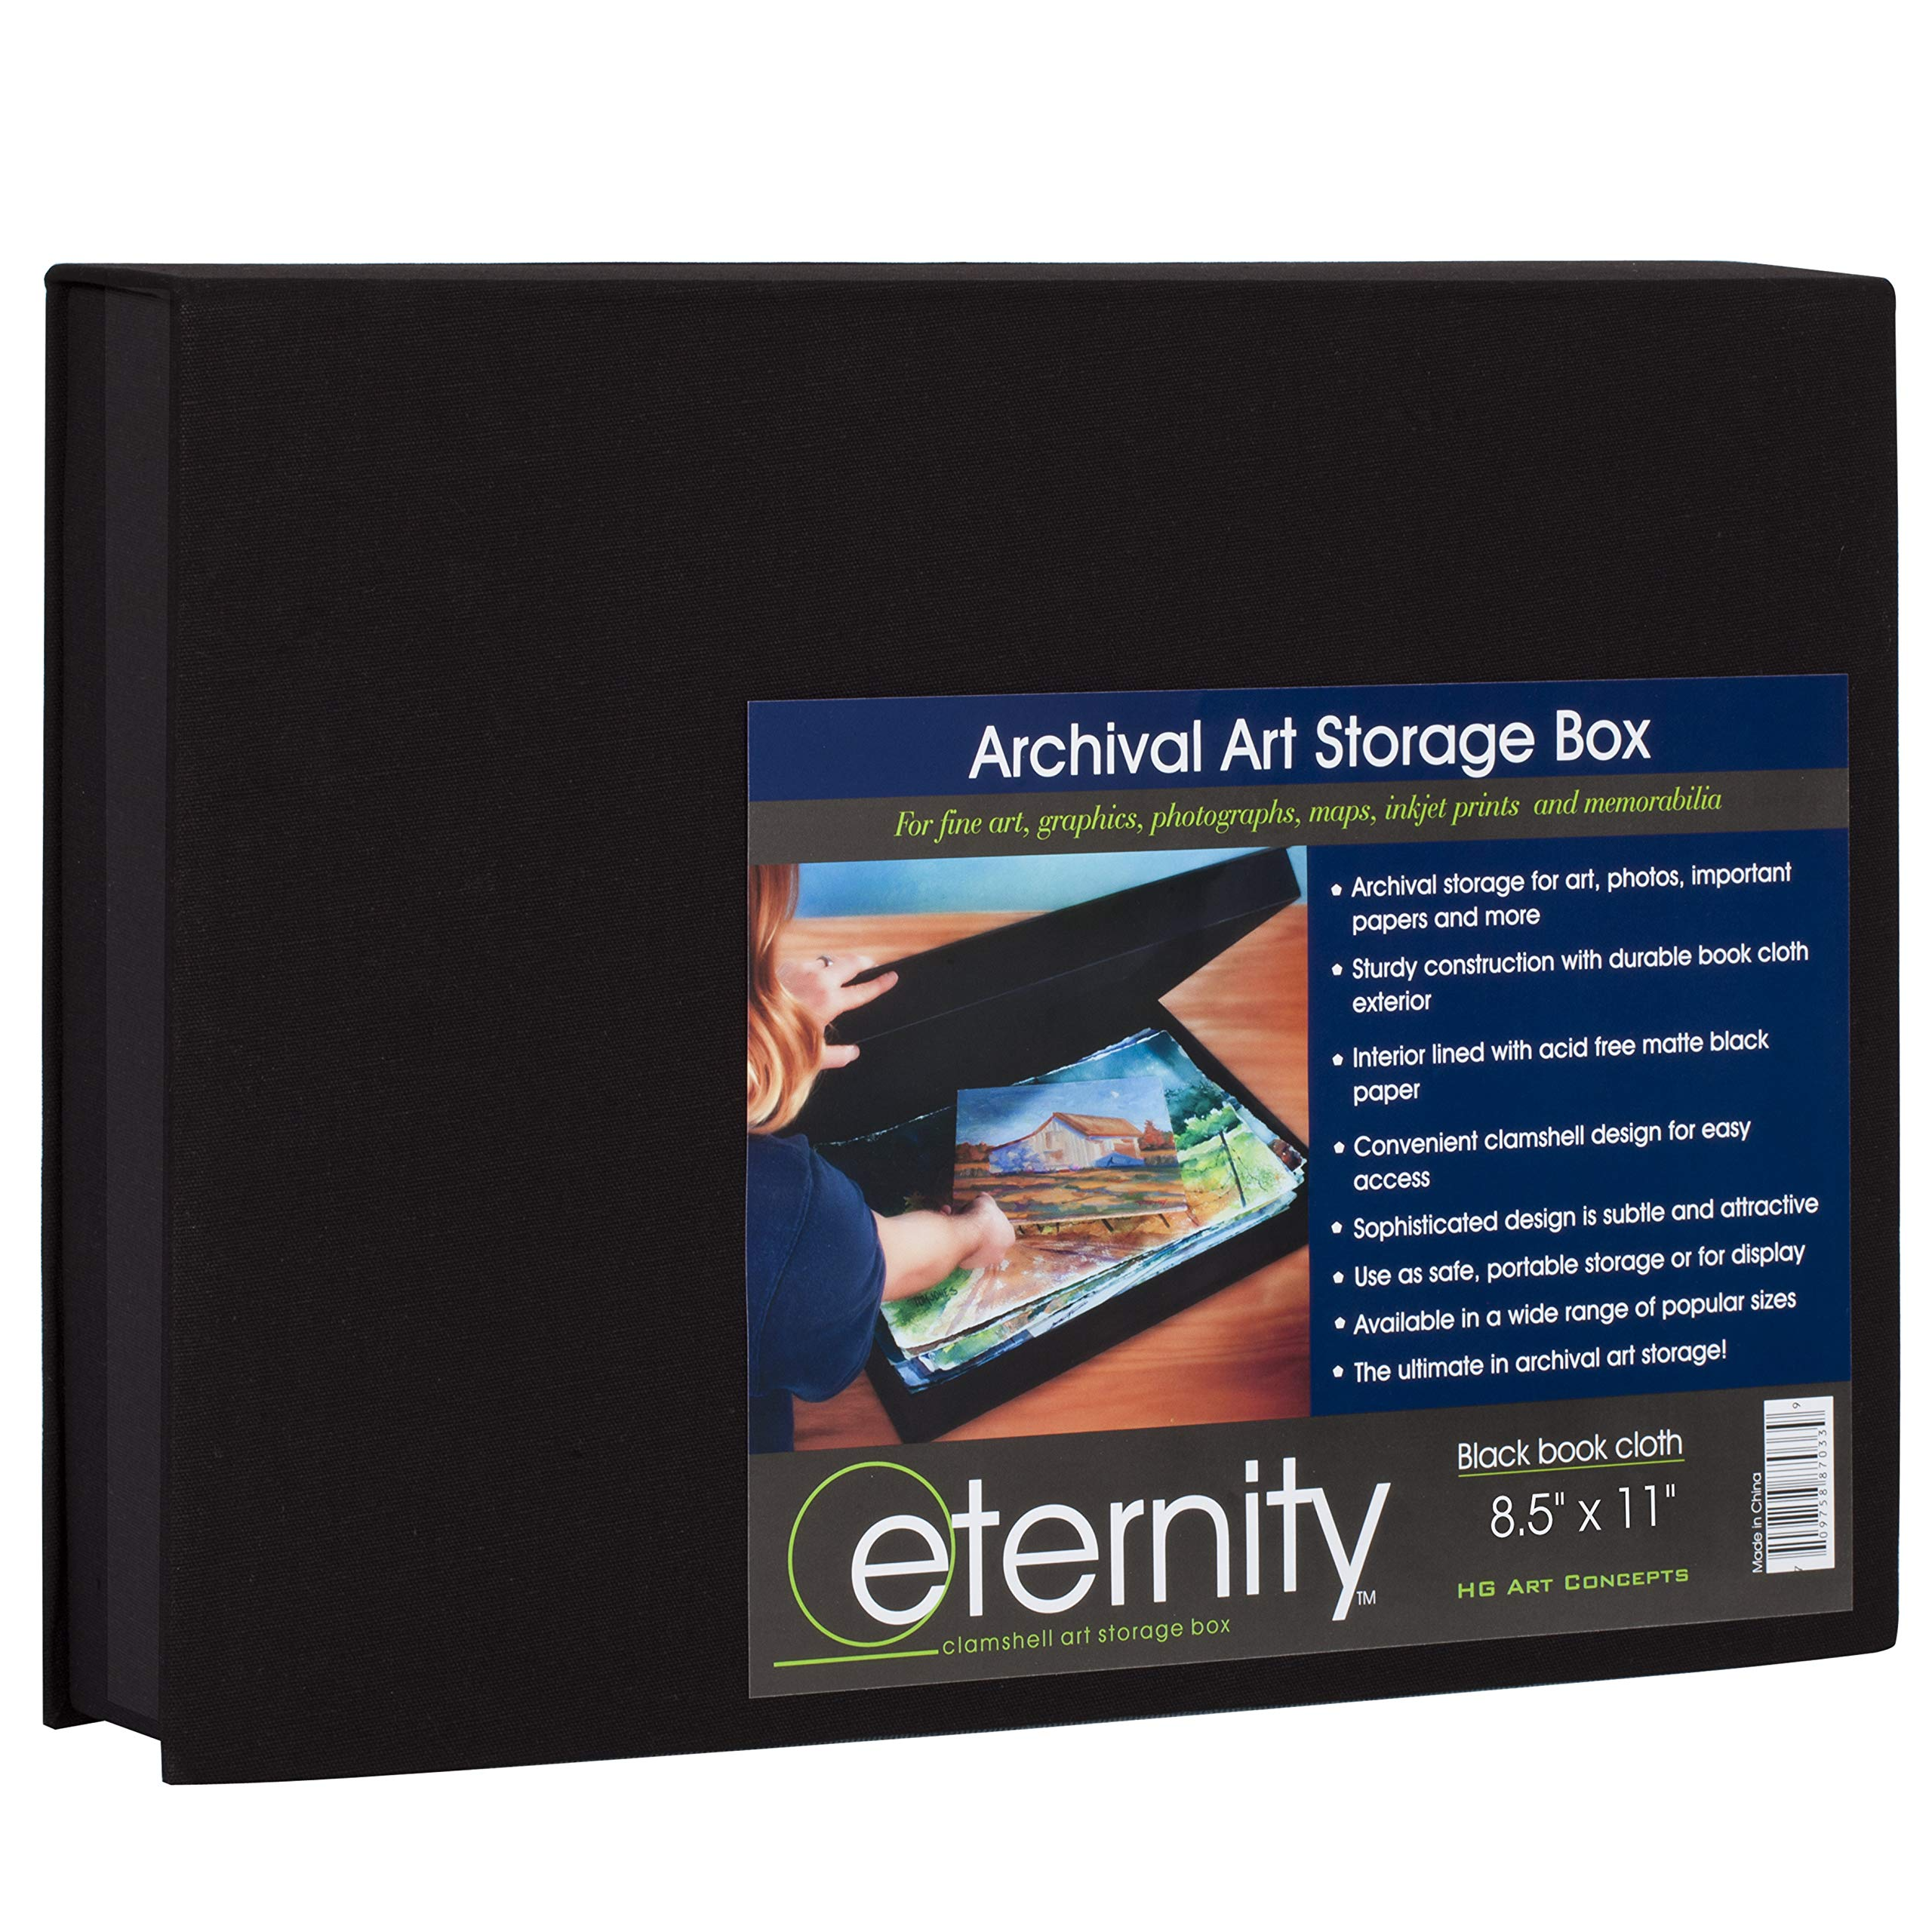 HG Concepts Art Photo Storage Box Eternity Archival Clamshell Box for Storing Artwork, Photos & Documents Deluxe Acid-Free Sturdy & Lined with Archival Paper - [Black - 8.5'' x 11'']